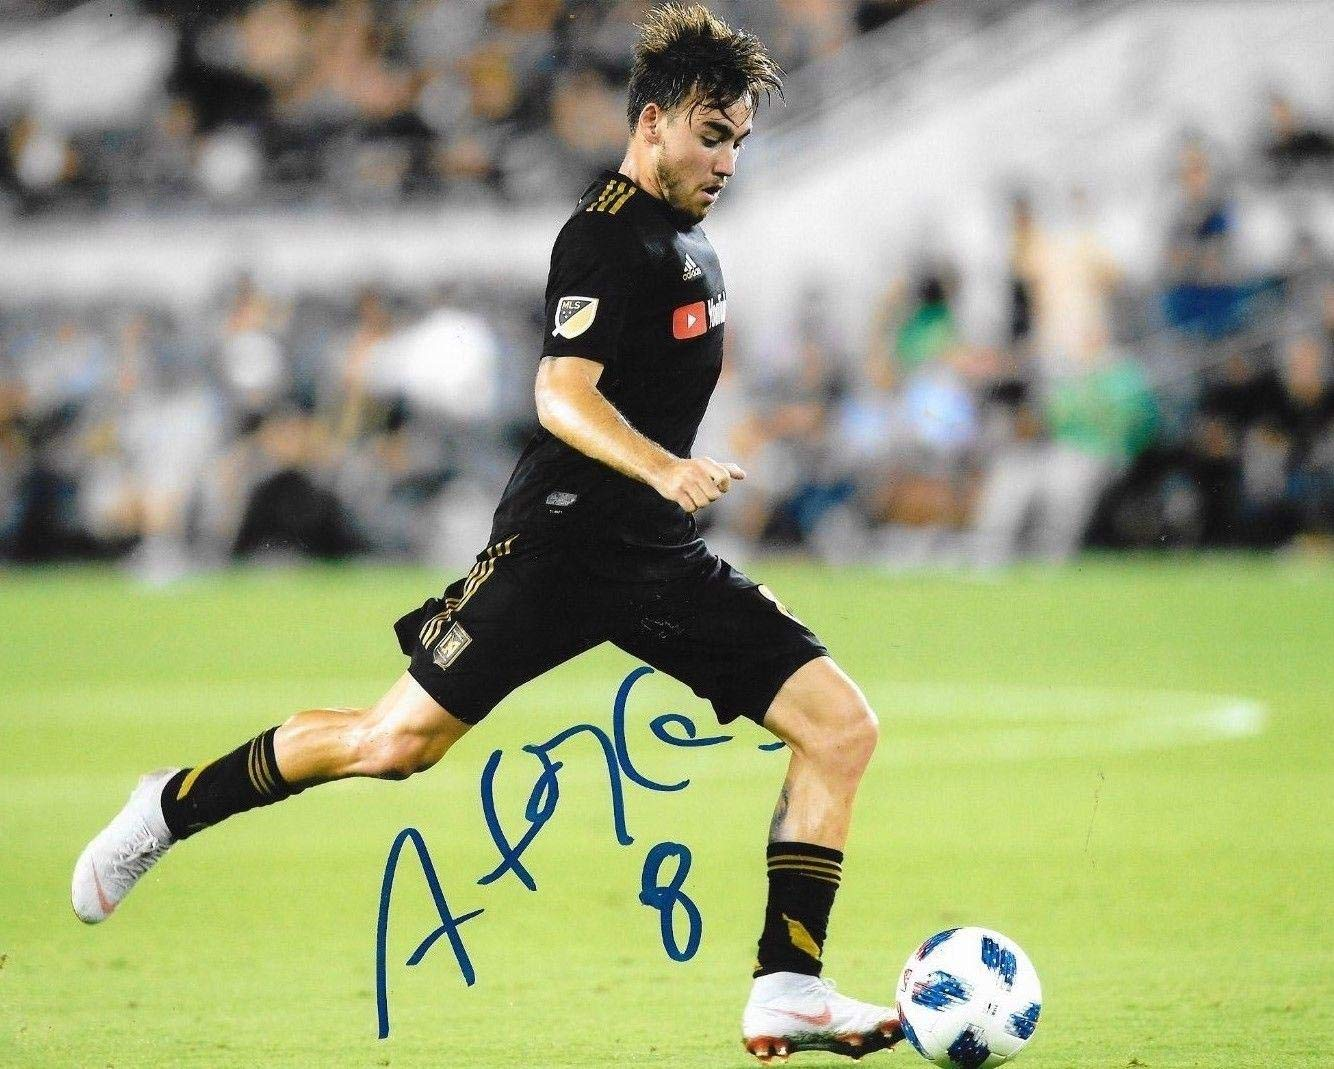 24d926bba Signed Andre Horta Photo - Club LAFC 8x10 MLS 2 - Autographed Soccer Photos  at Amazon s Sports Collectibles Store